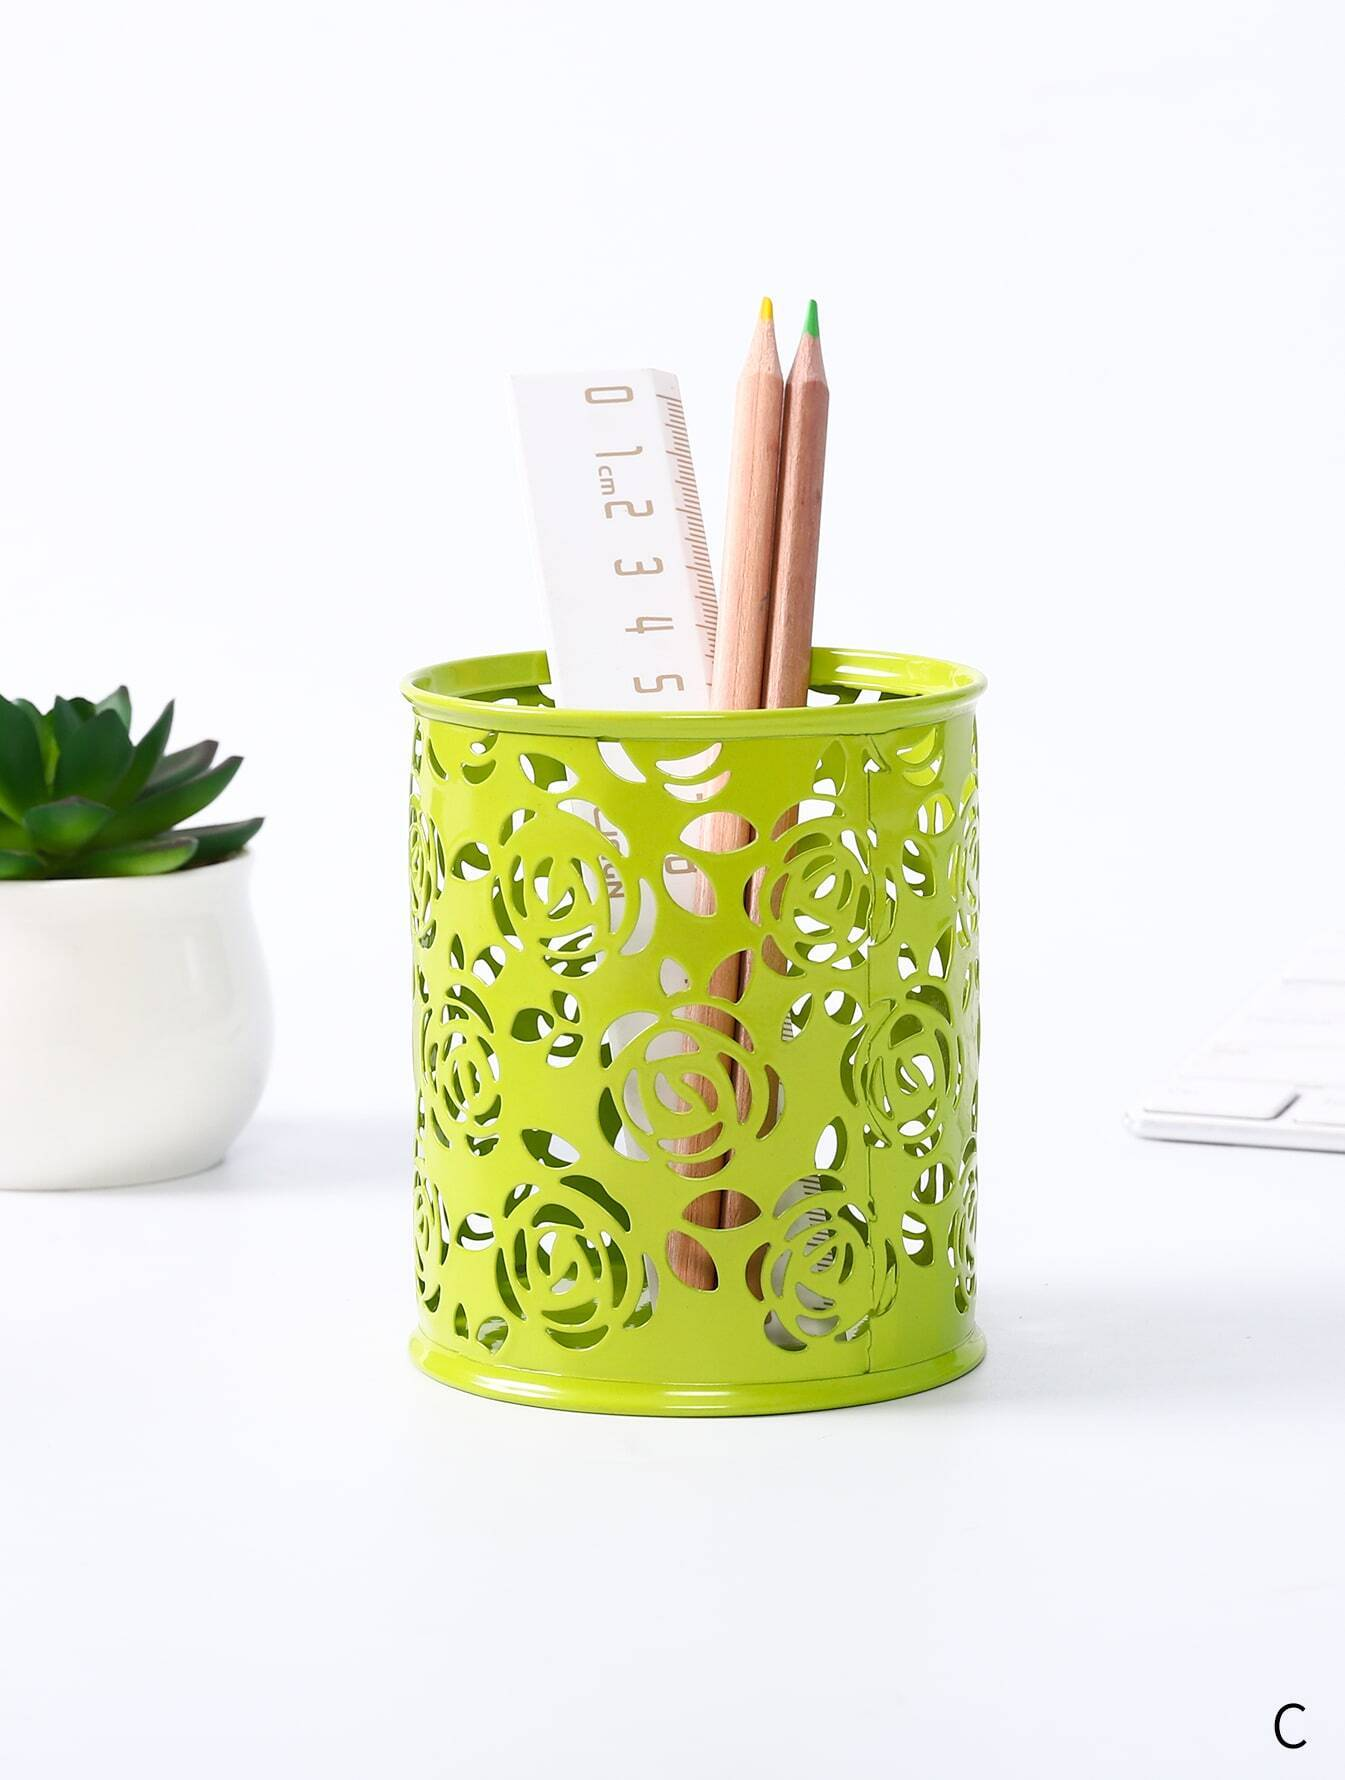 Hollow Flower Pencil Holder 1pc